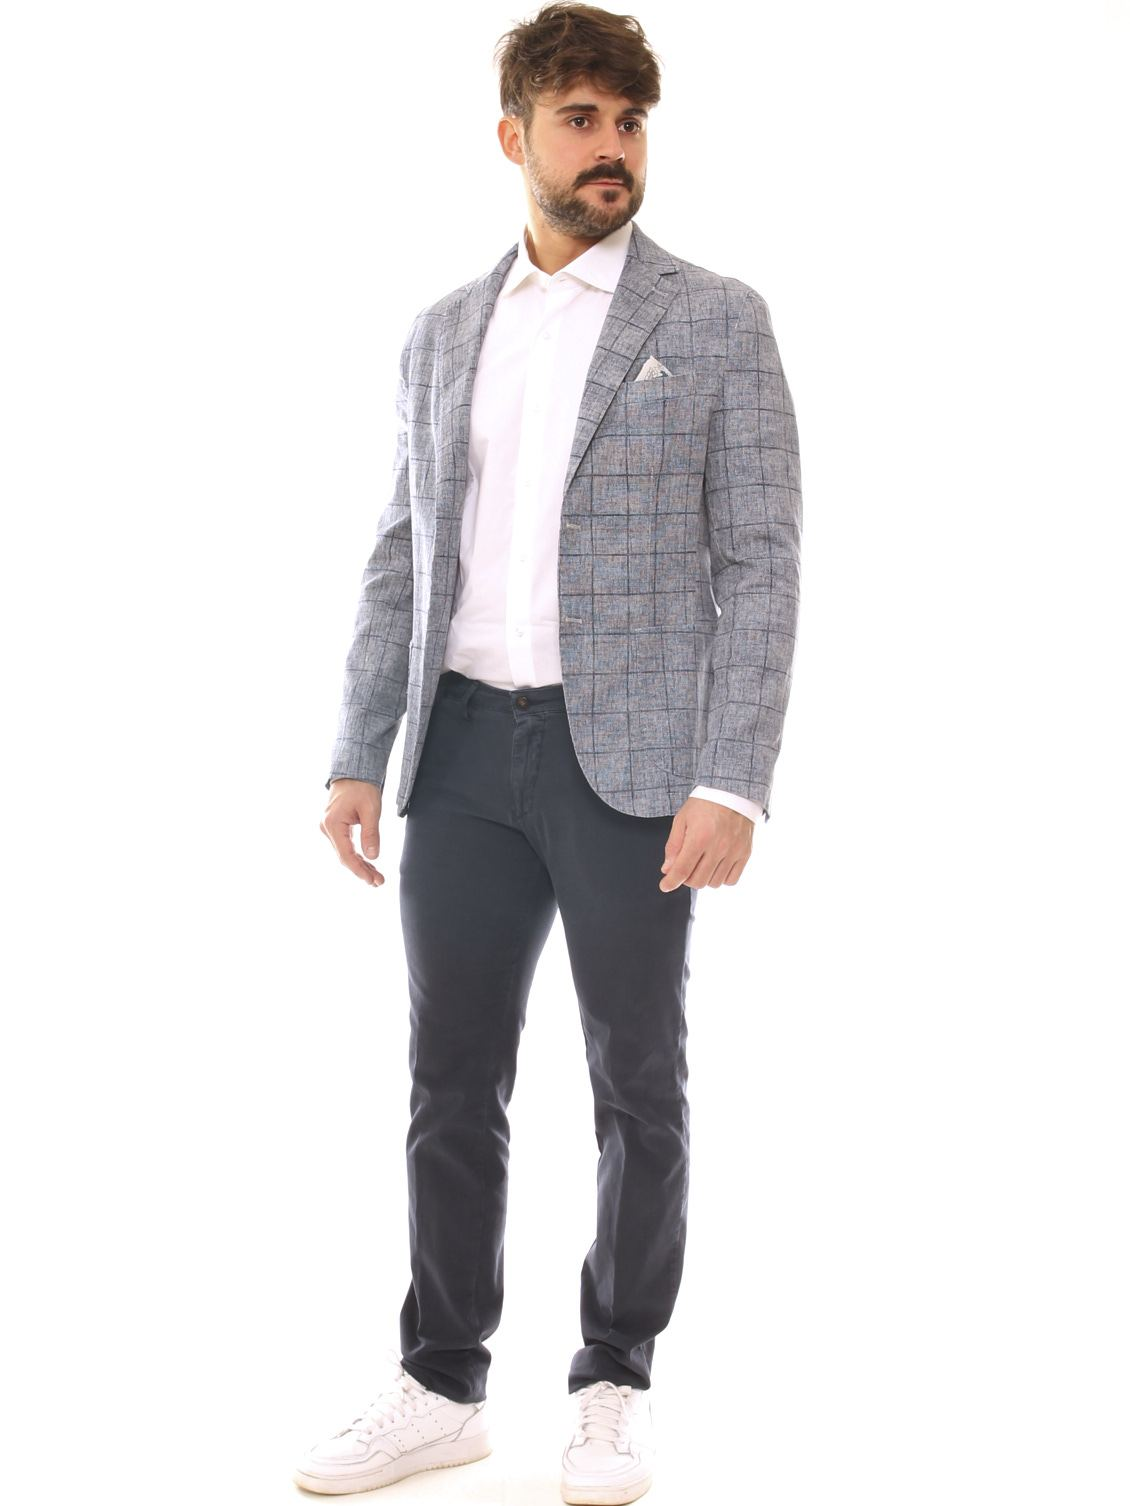 GIacca uomo slim fit in cotone stretch fantasia quadri melange - Luanaromizi.com